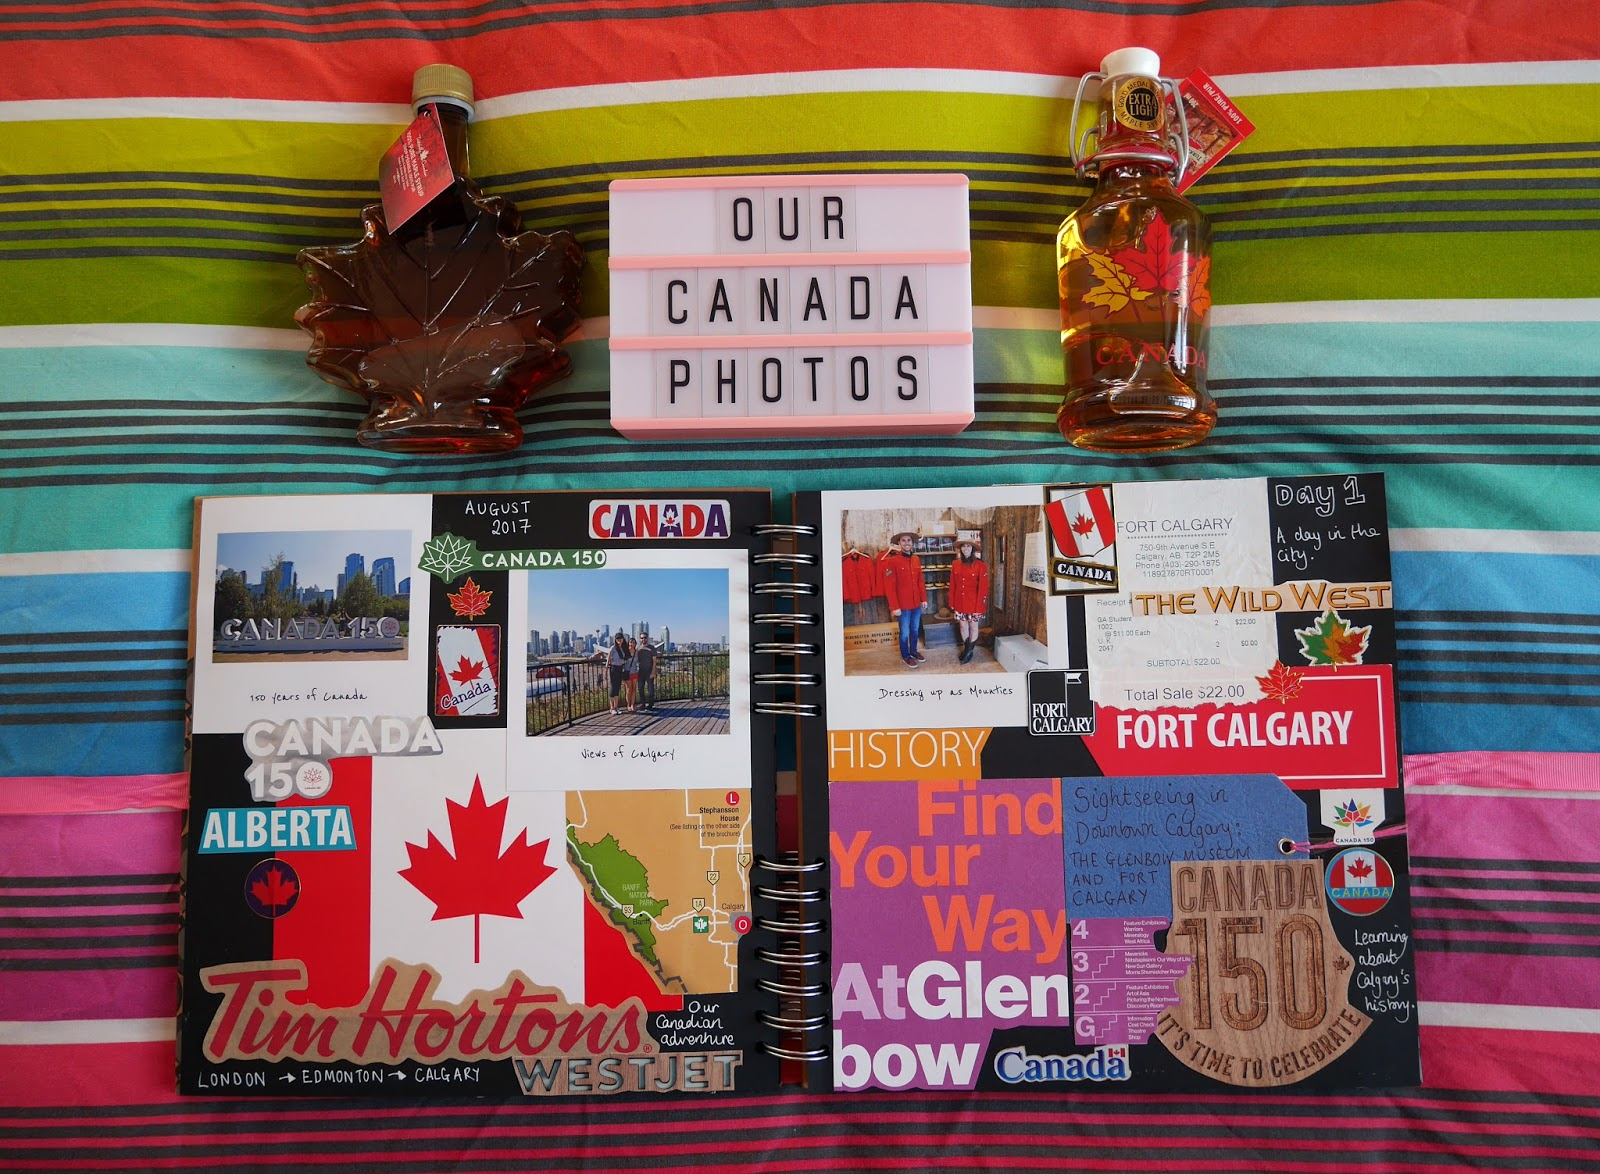 Canada travel scrapbook pages 1-2 (Arriving in Calgary) featuring Printiki's retro prints